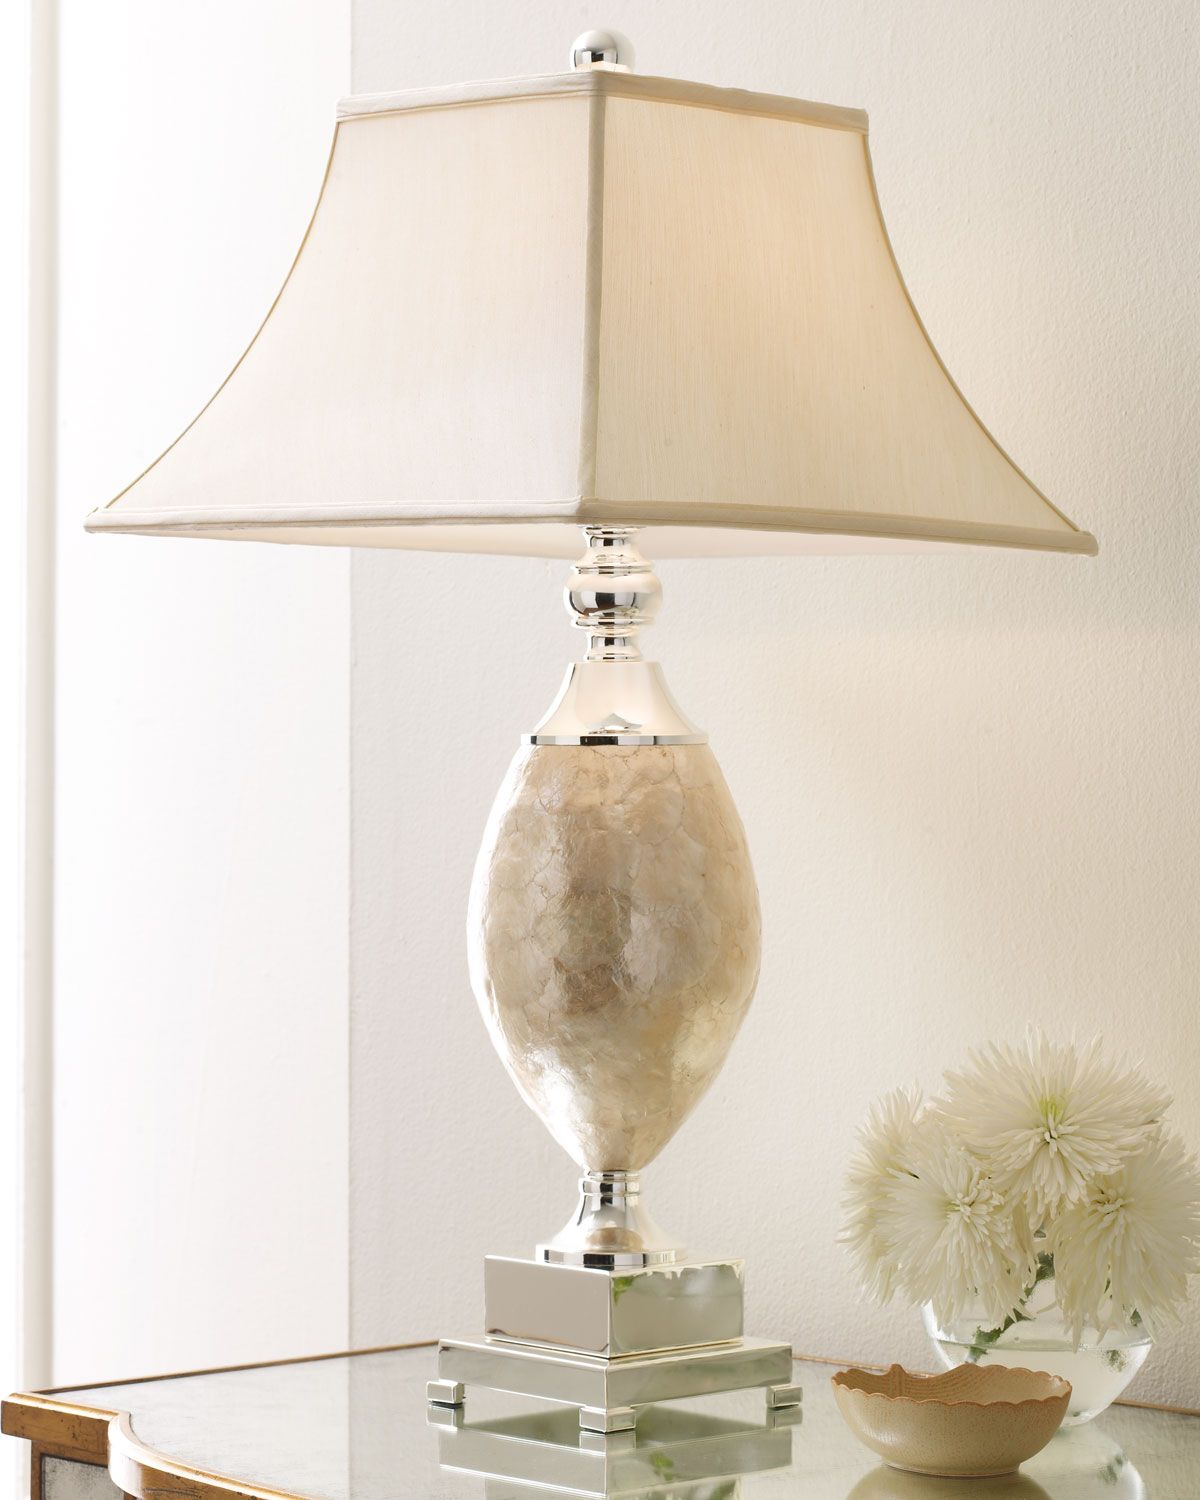 Cheap Table Lamps For Living Room Mother Of Pearl Lamp Neiman Marcus Decorating